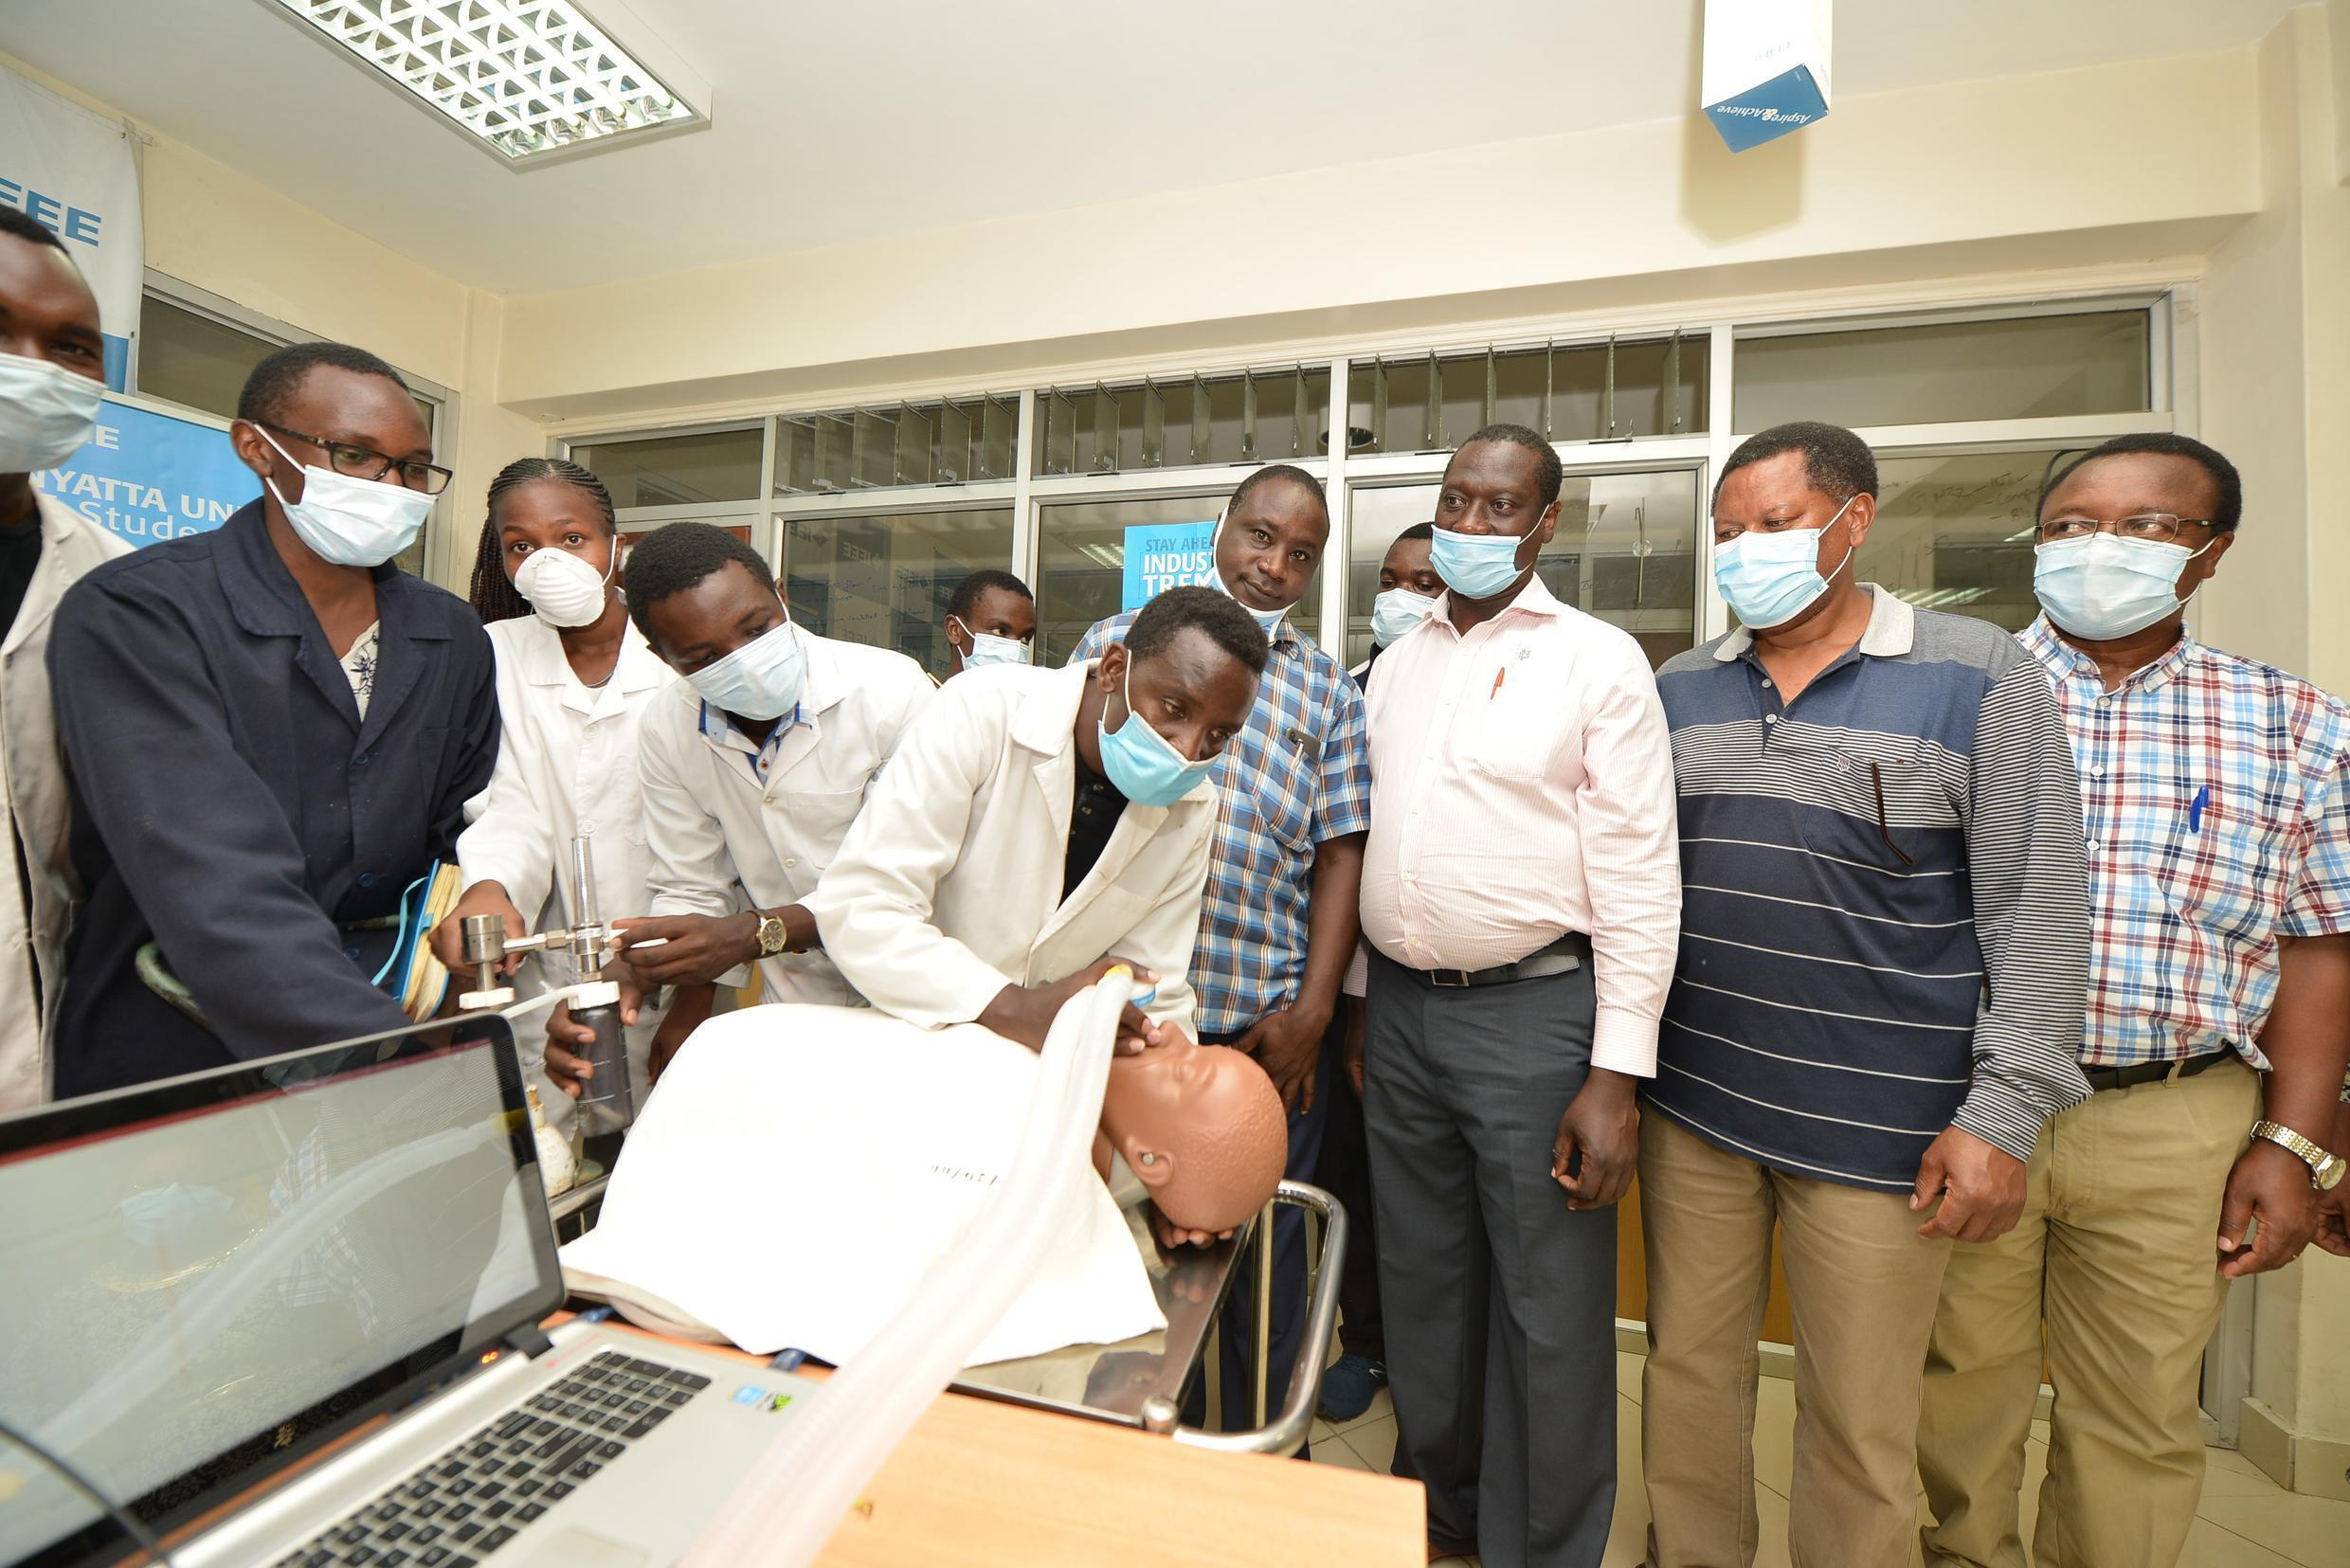 Kenyatta University's Incubation Centre, with Dr Shadrack Maina Mambo, Dean of Engineering and Technology, performing a demonstration.